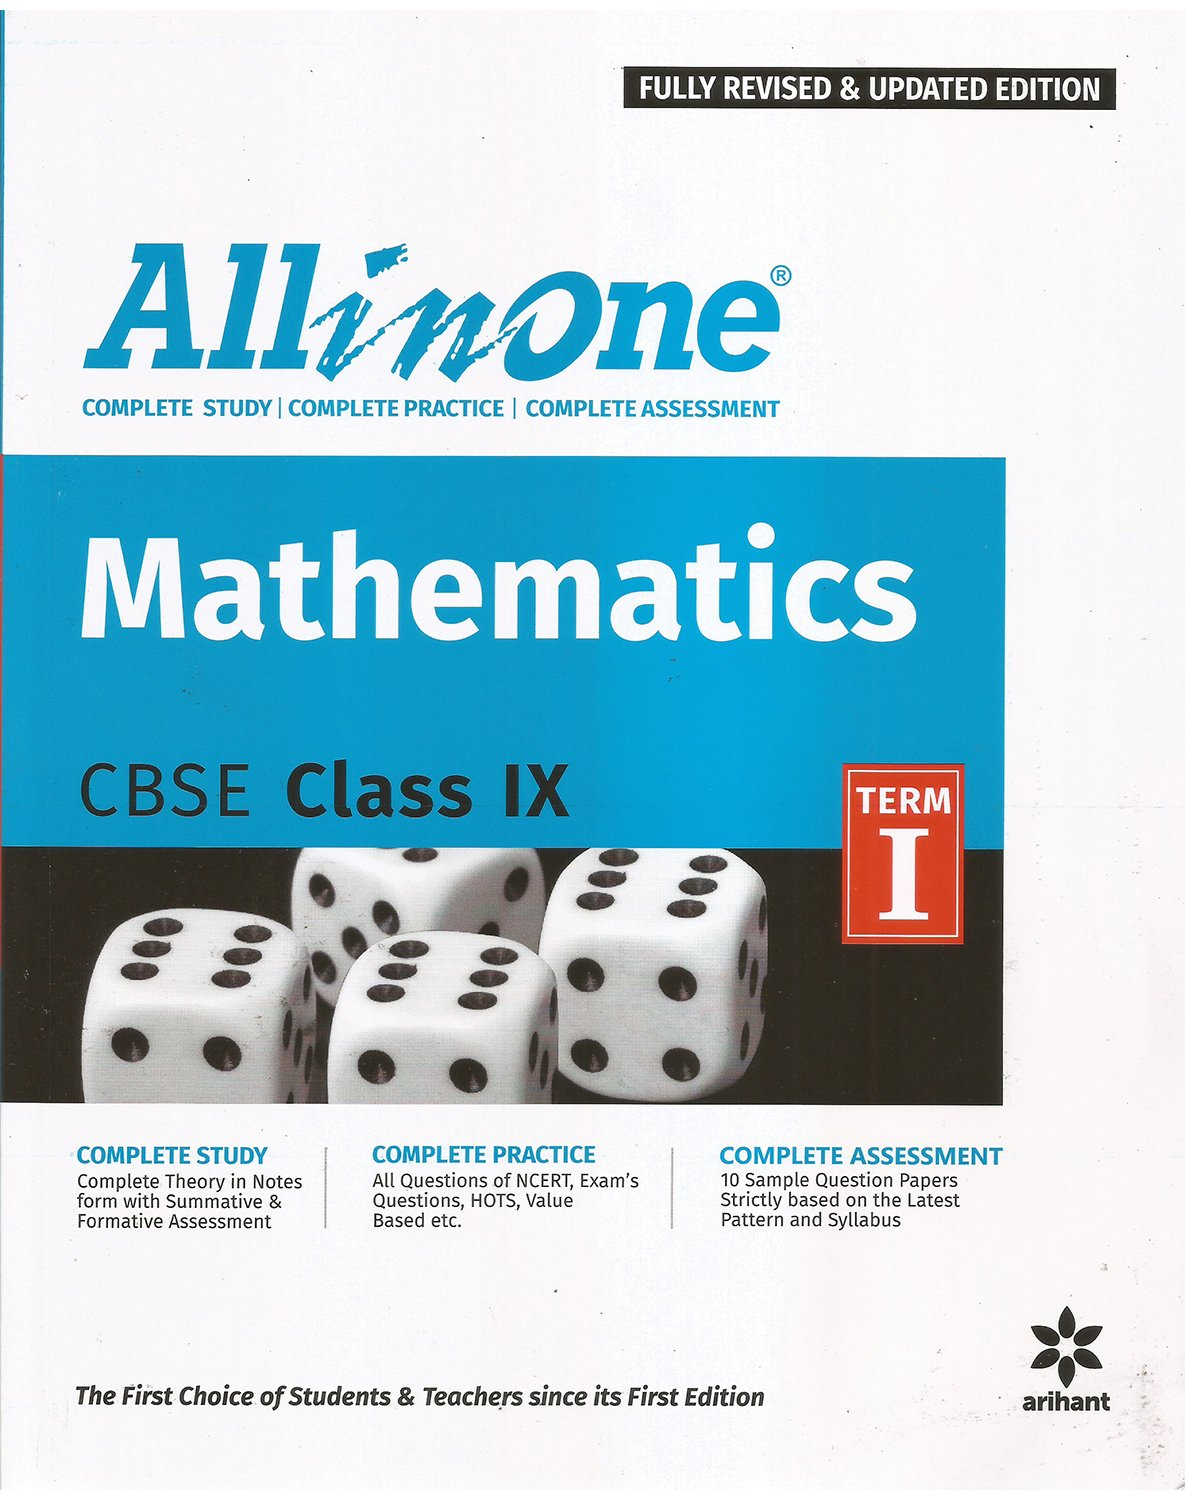 All in One Mathematics CBSE Class 9th Term-I Old Edition: Amazon.in ...